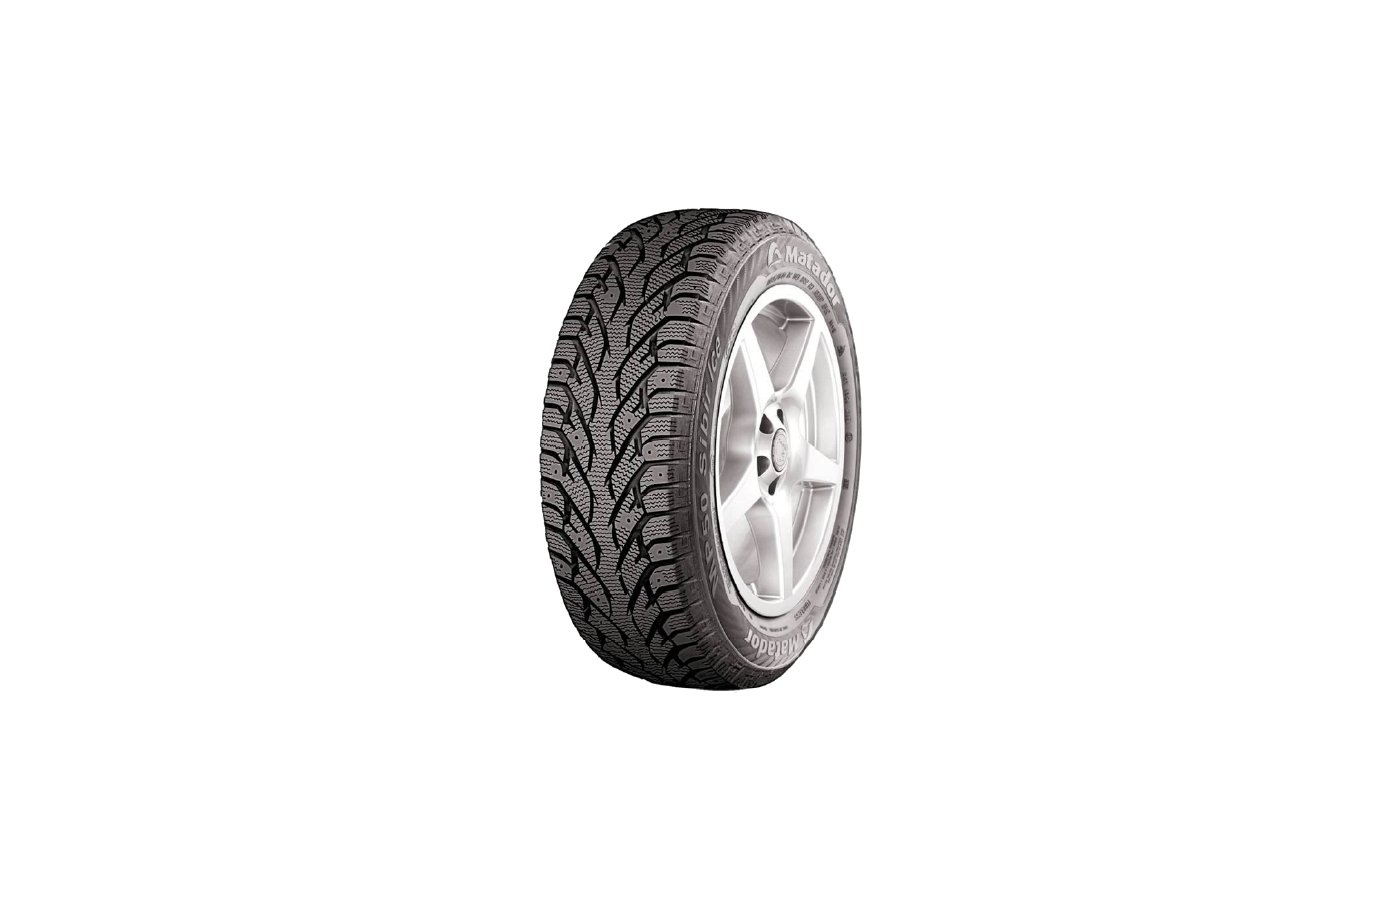 Шина Matador MP 50 Sibir Ice 205/60 R15 TL 91T шип